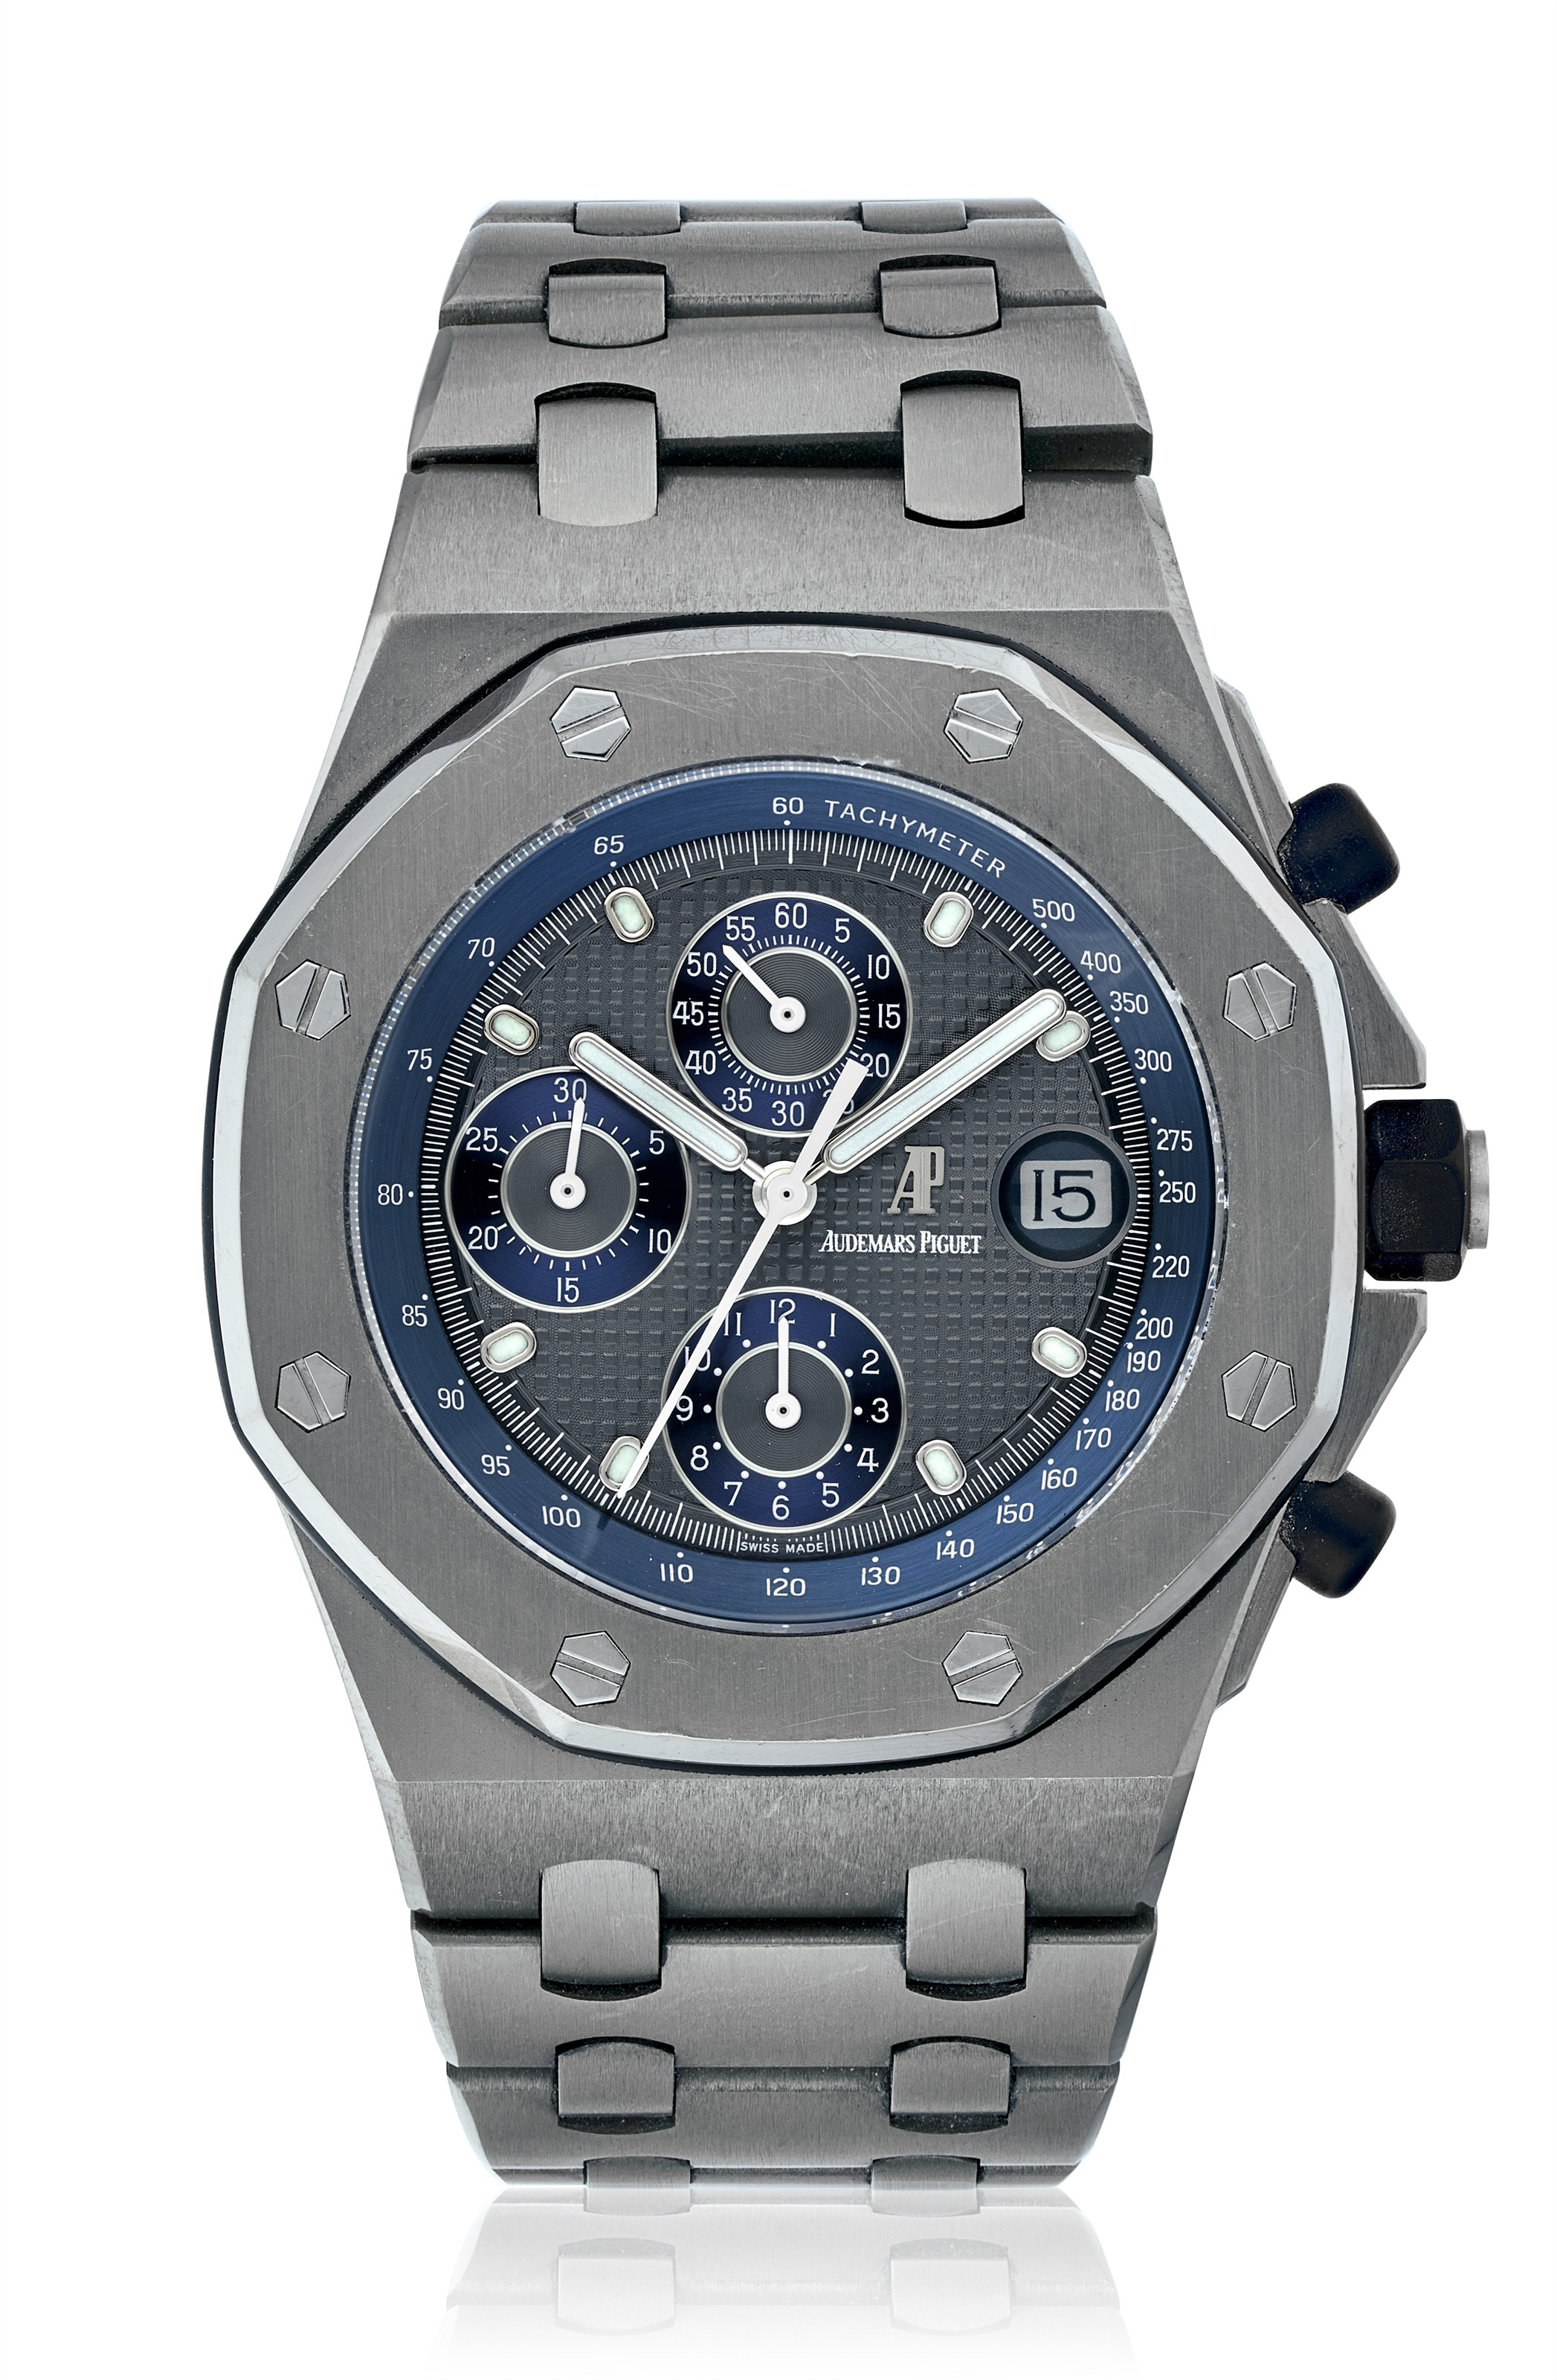 AUDEMARS PIGUET, ROYAL OAK OFFSHORE E-SERIES